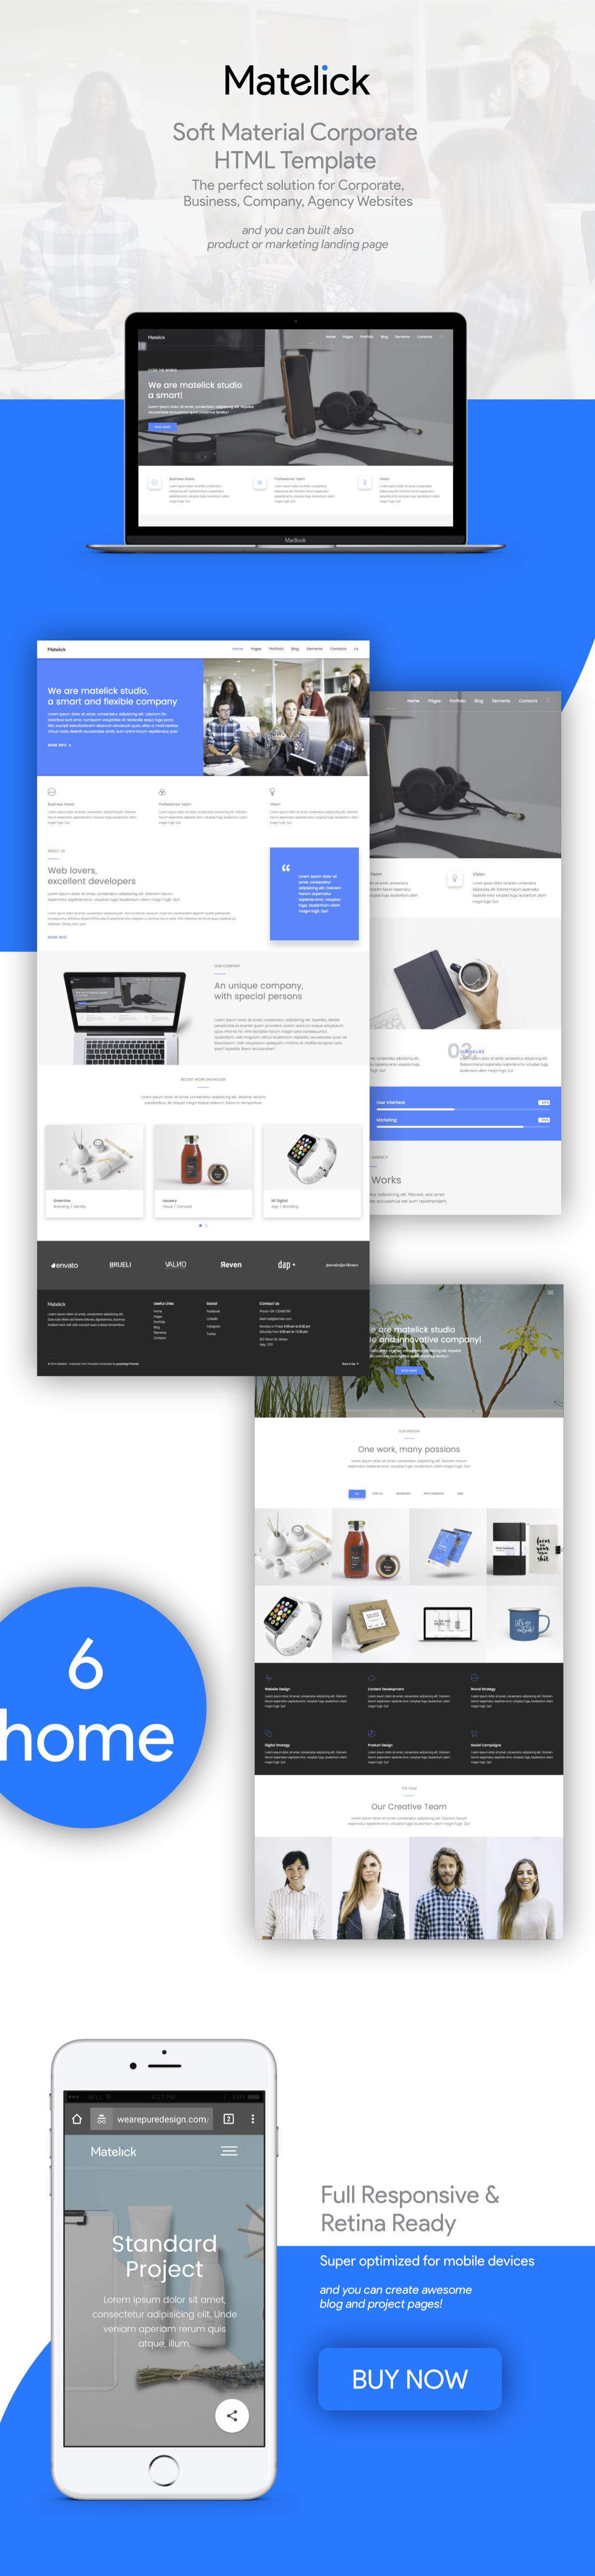 Matelick - Soft Material Corporate HTML Template - 2